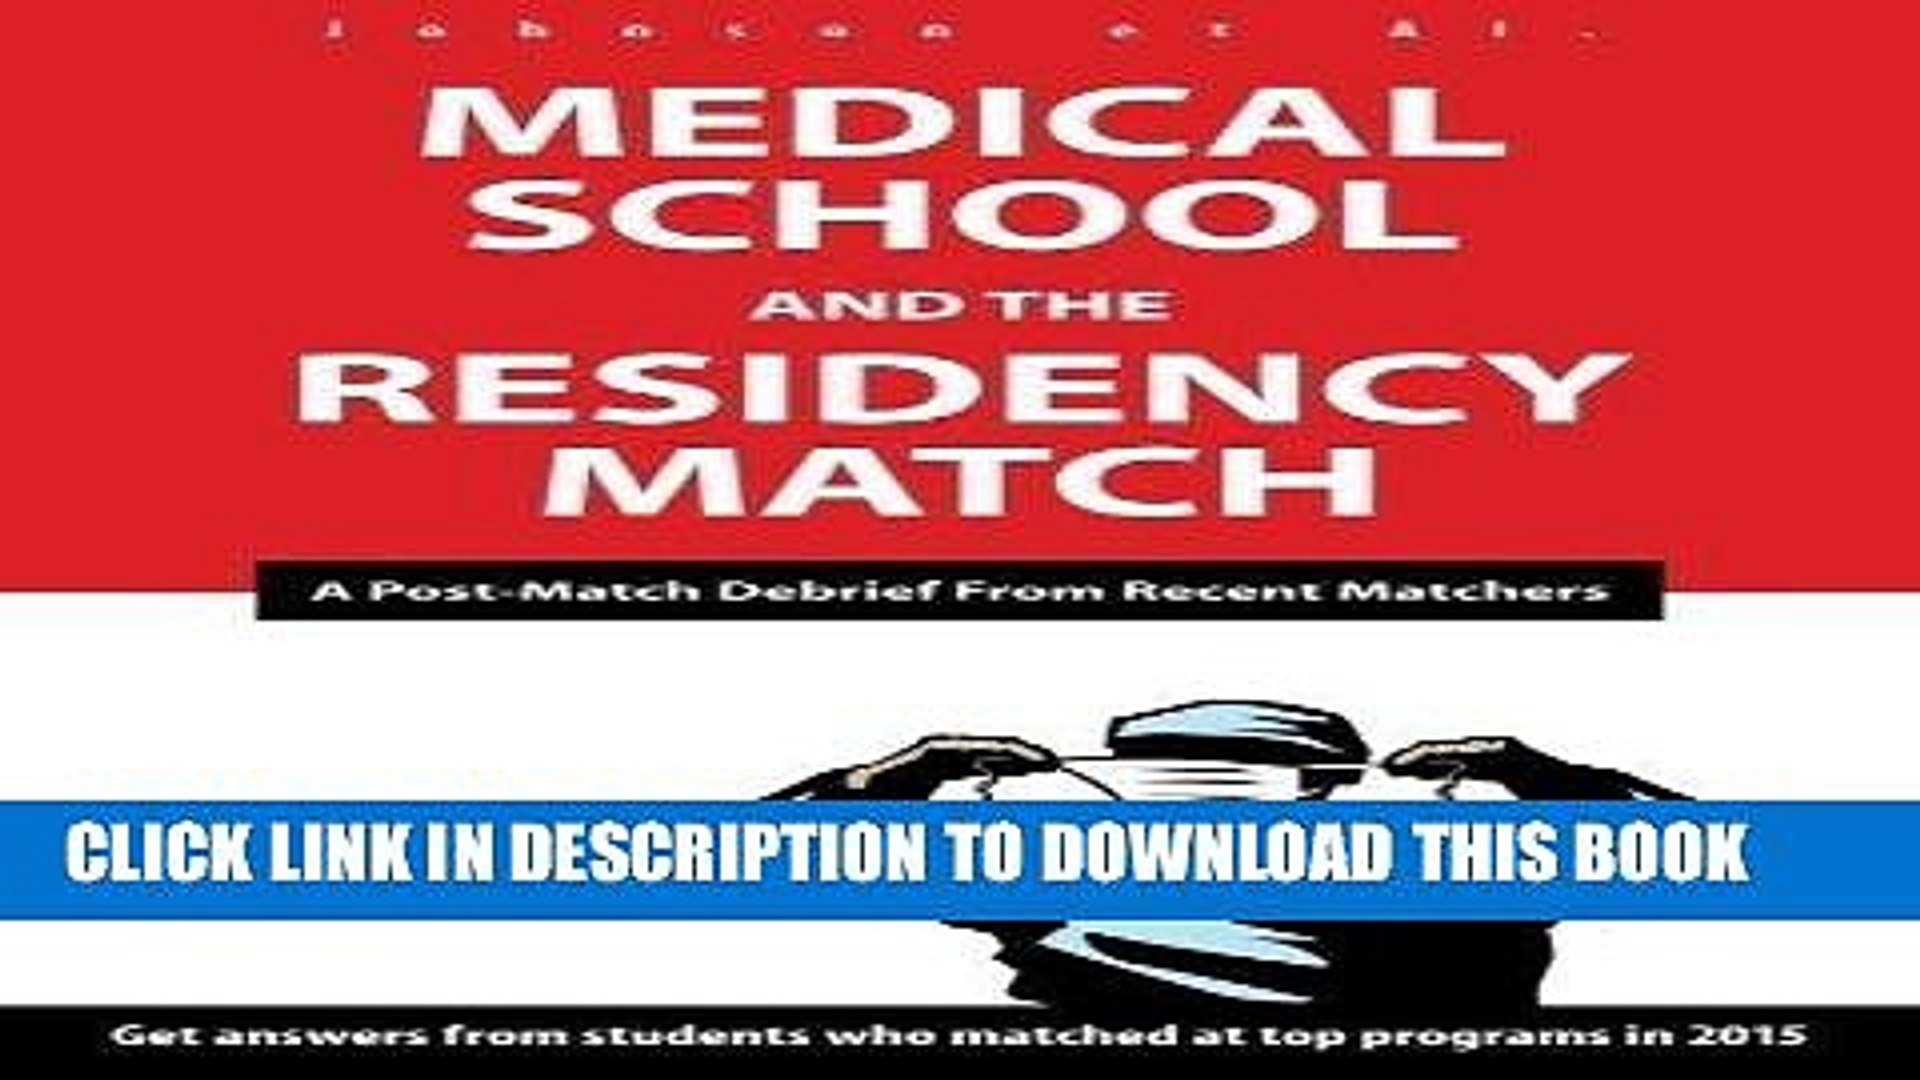 Ebook Medical School and the Residency Match: A Post-Match Debrief from Recent Matchers by Johnson